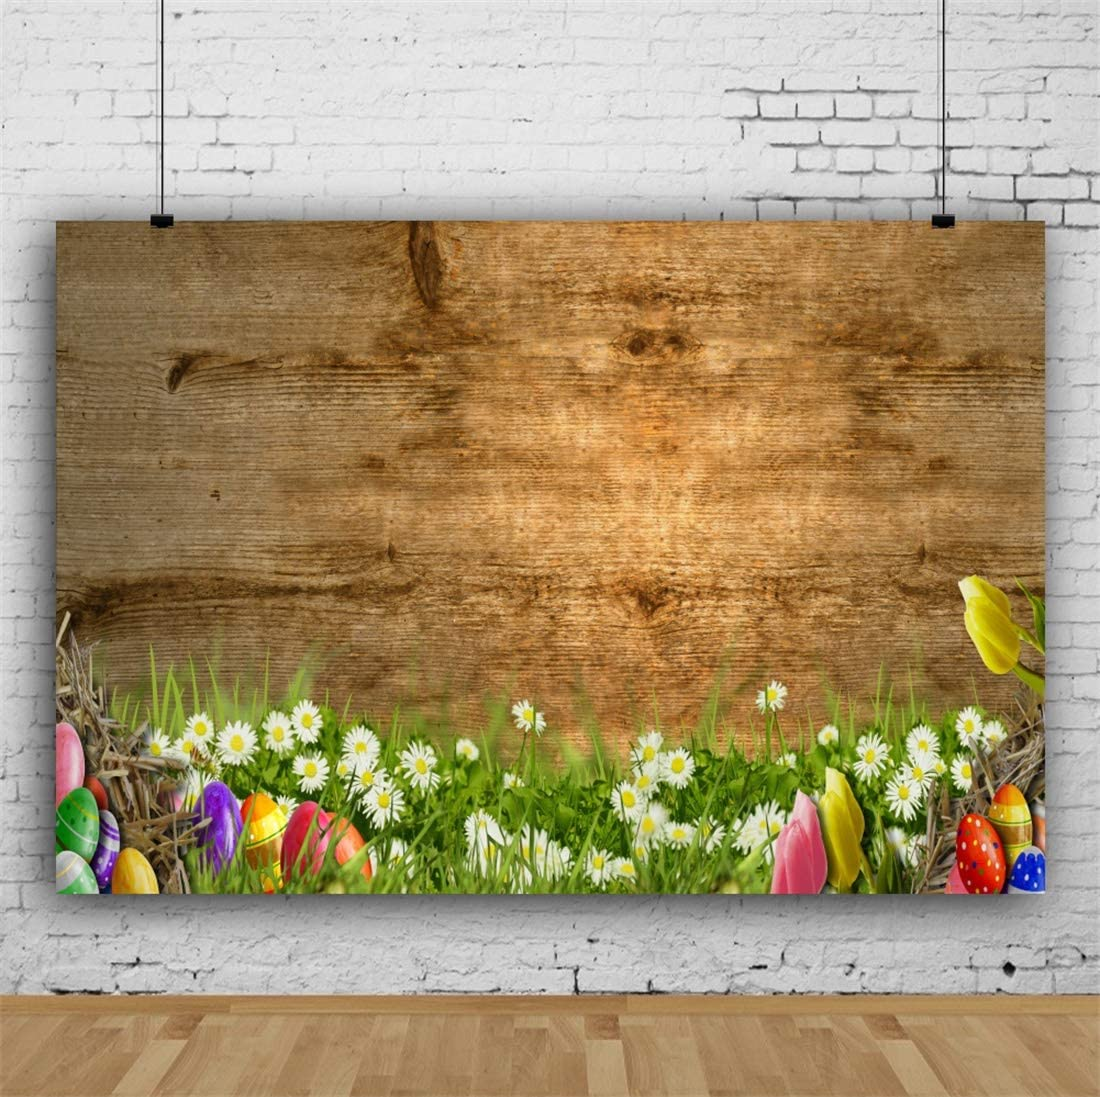 Yeele-Easter-Backdrop 5x3ft Easter Photography Background Eggs Grassland White Flower Brown Wooden Plank Photo Backdrops Pictures Studio Props Wallpaper